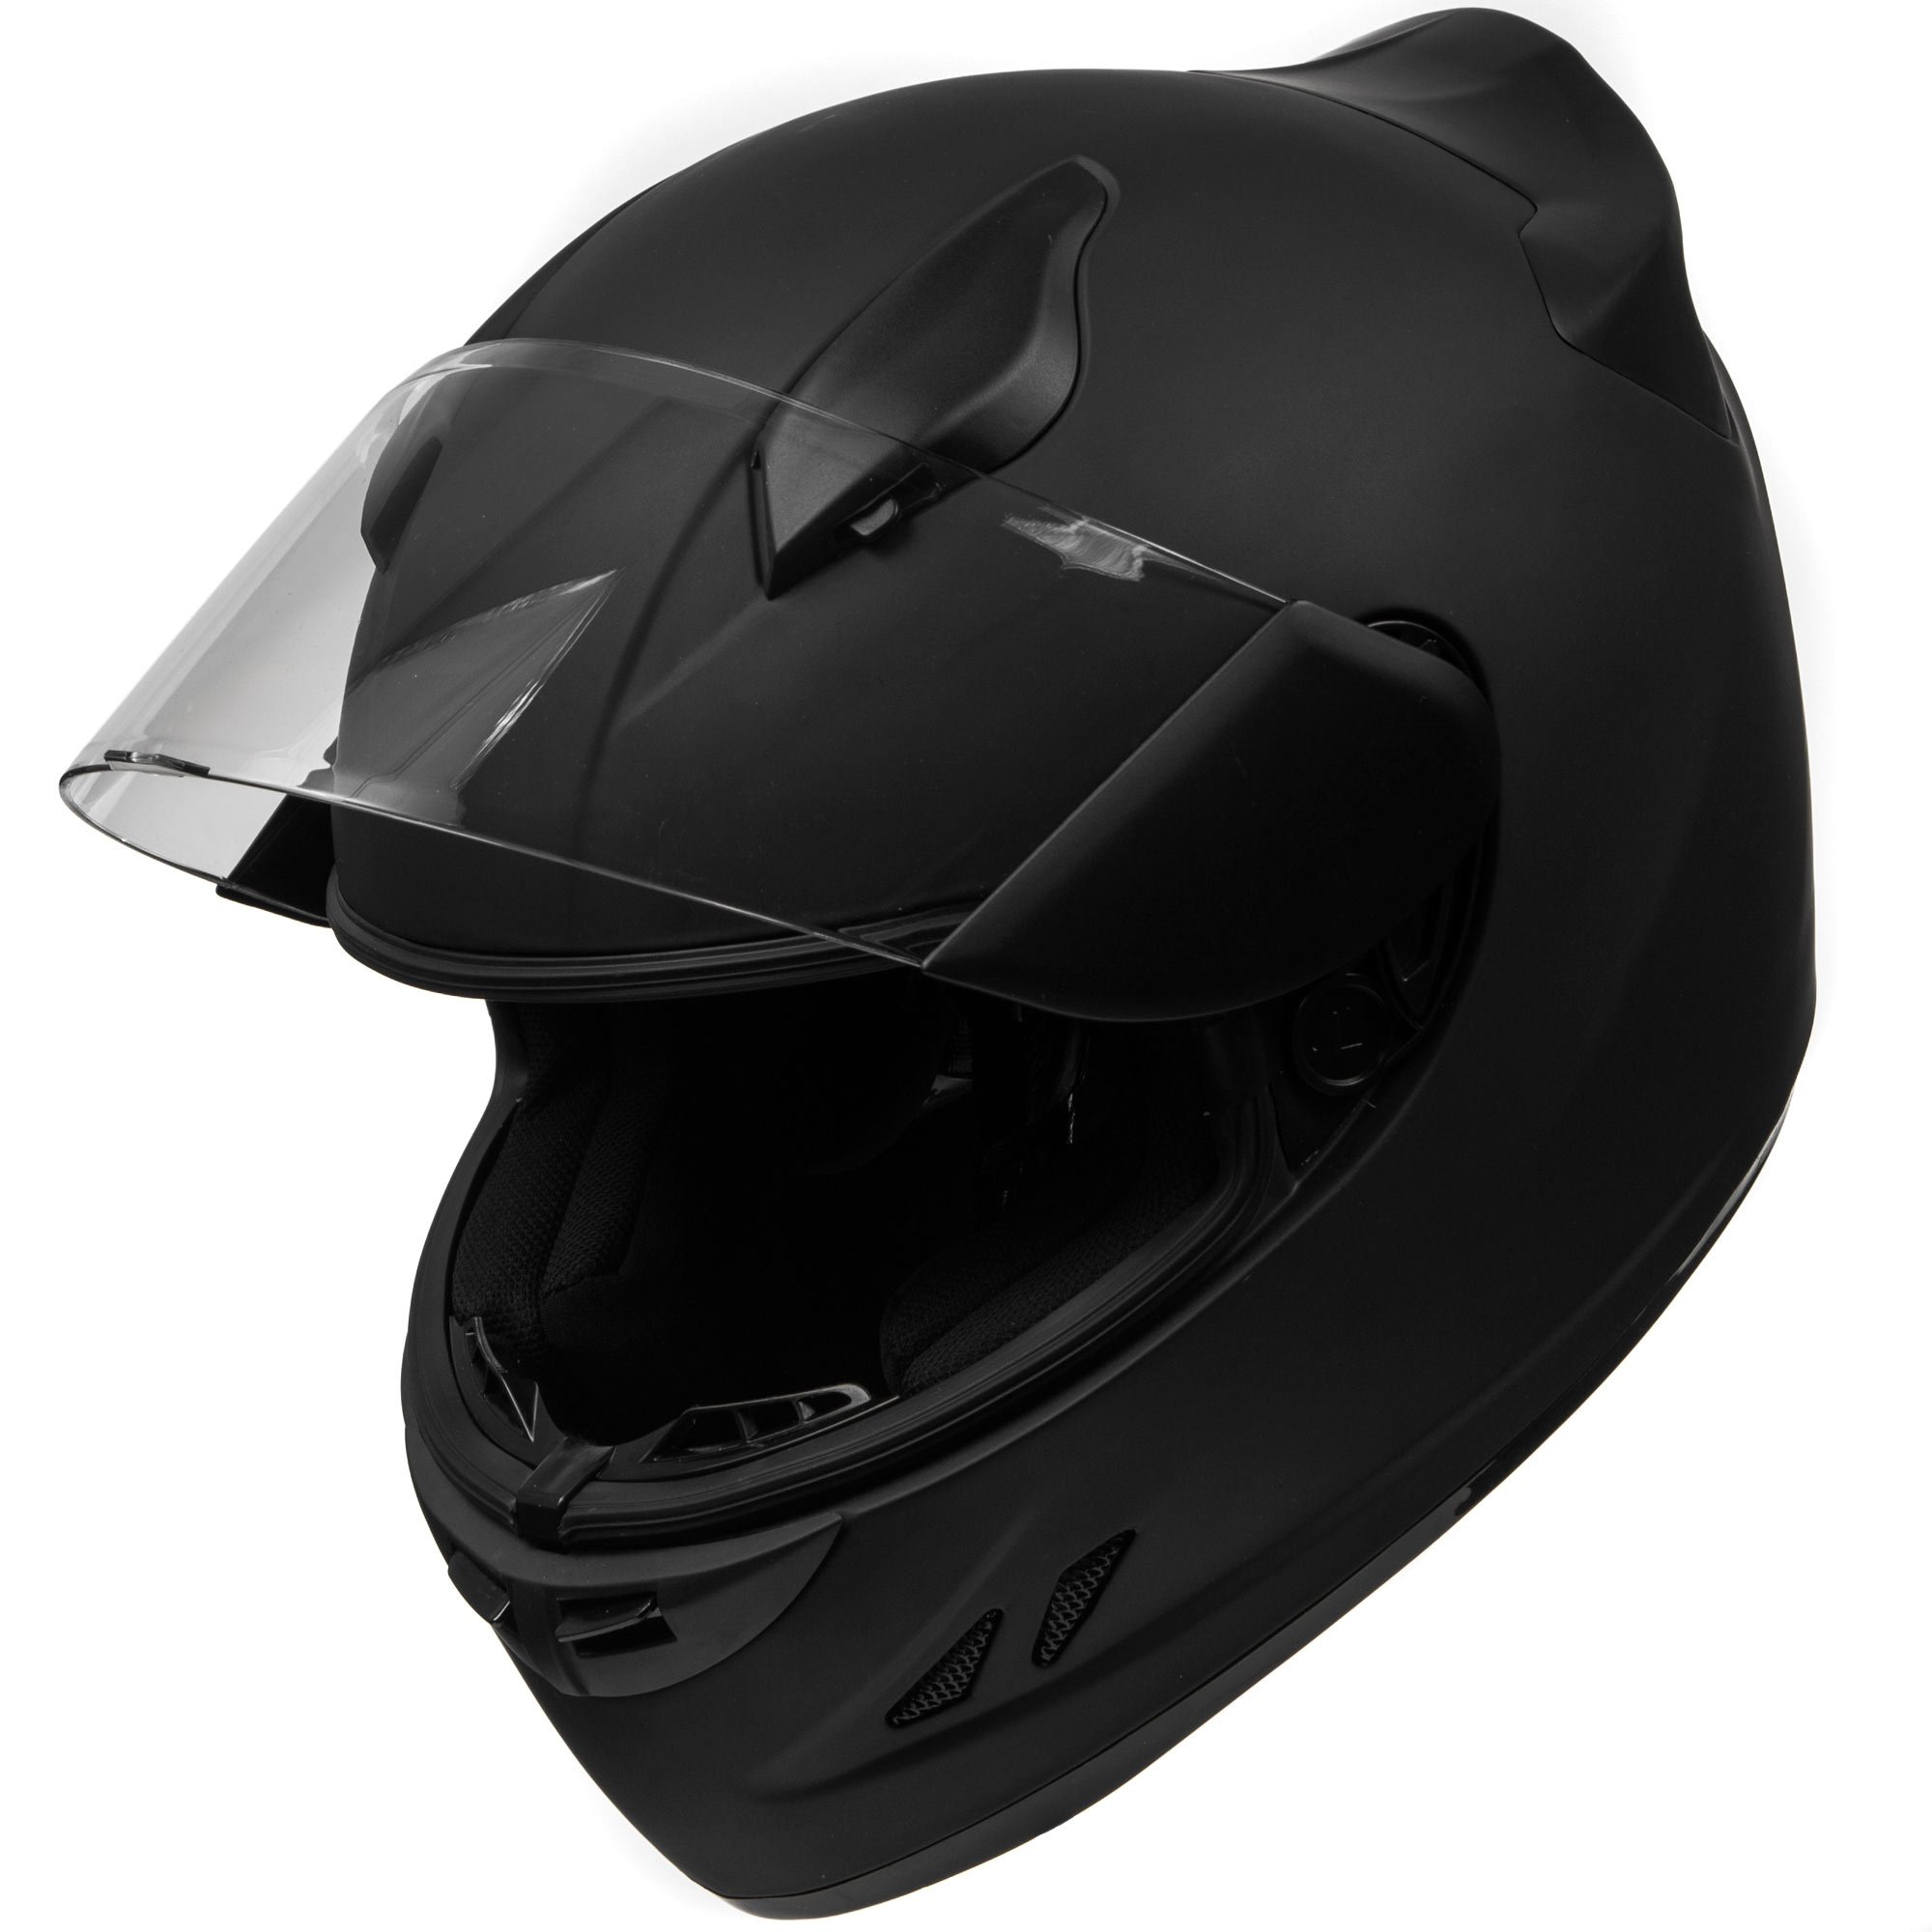 KOI DOT Motorcycle Helmet Full Face KOI Sportbike Matte Black w/ Clear Visor - Large